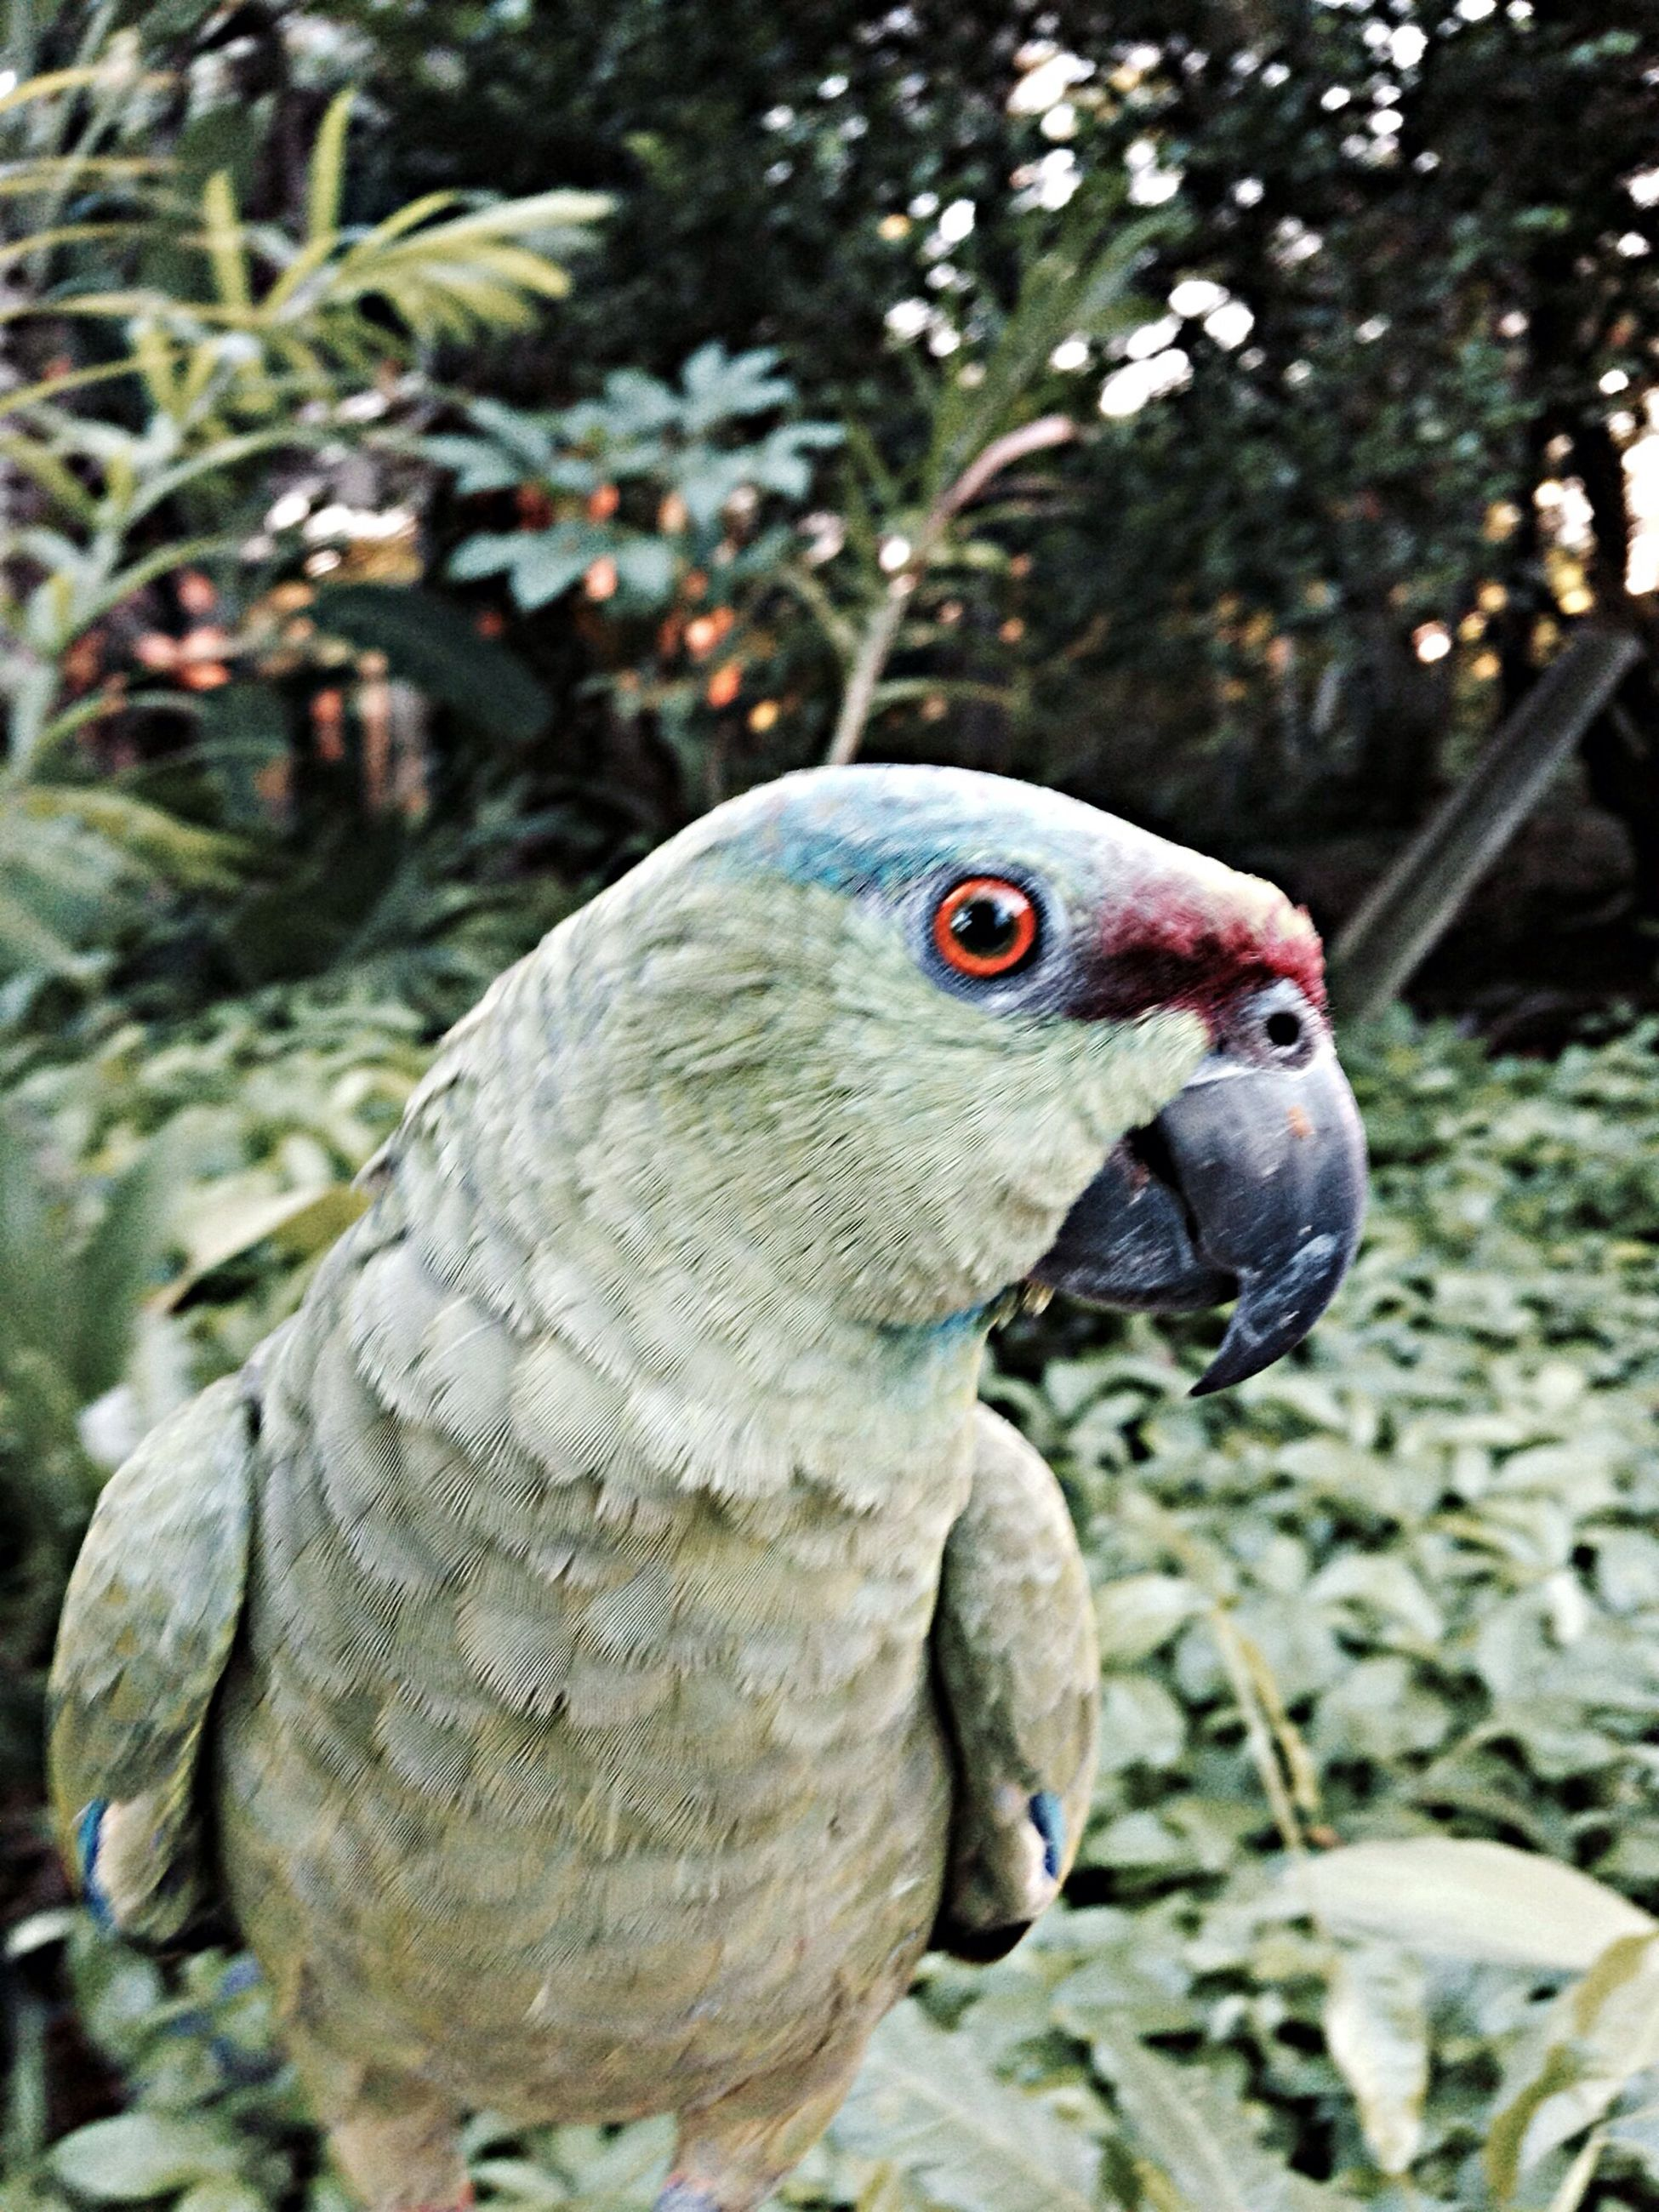 animal themes, one animal, animals in the wild, wildlife, bird, close-up, focus on foreground, beak, side view, nature, animal head, outdoors, day, beauty in nature, no people, zoology, parrot, selective focus, plant, avian